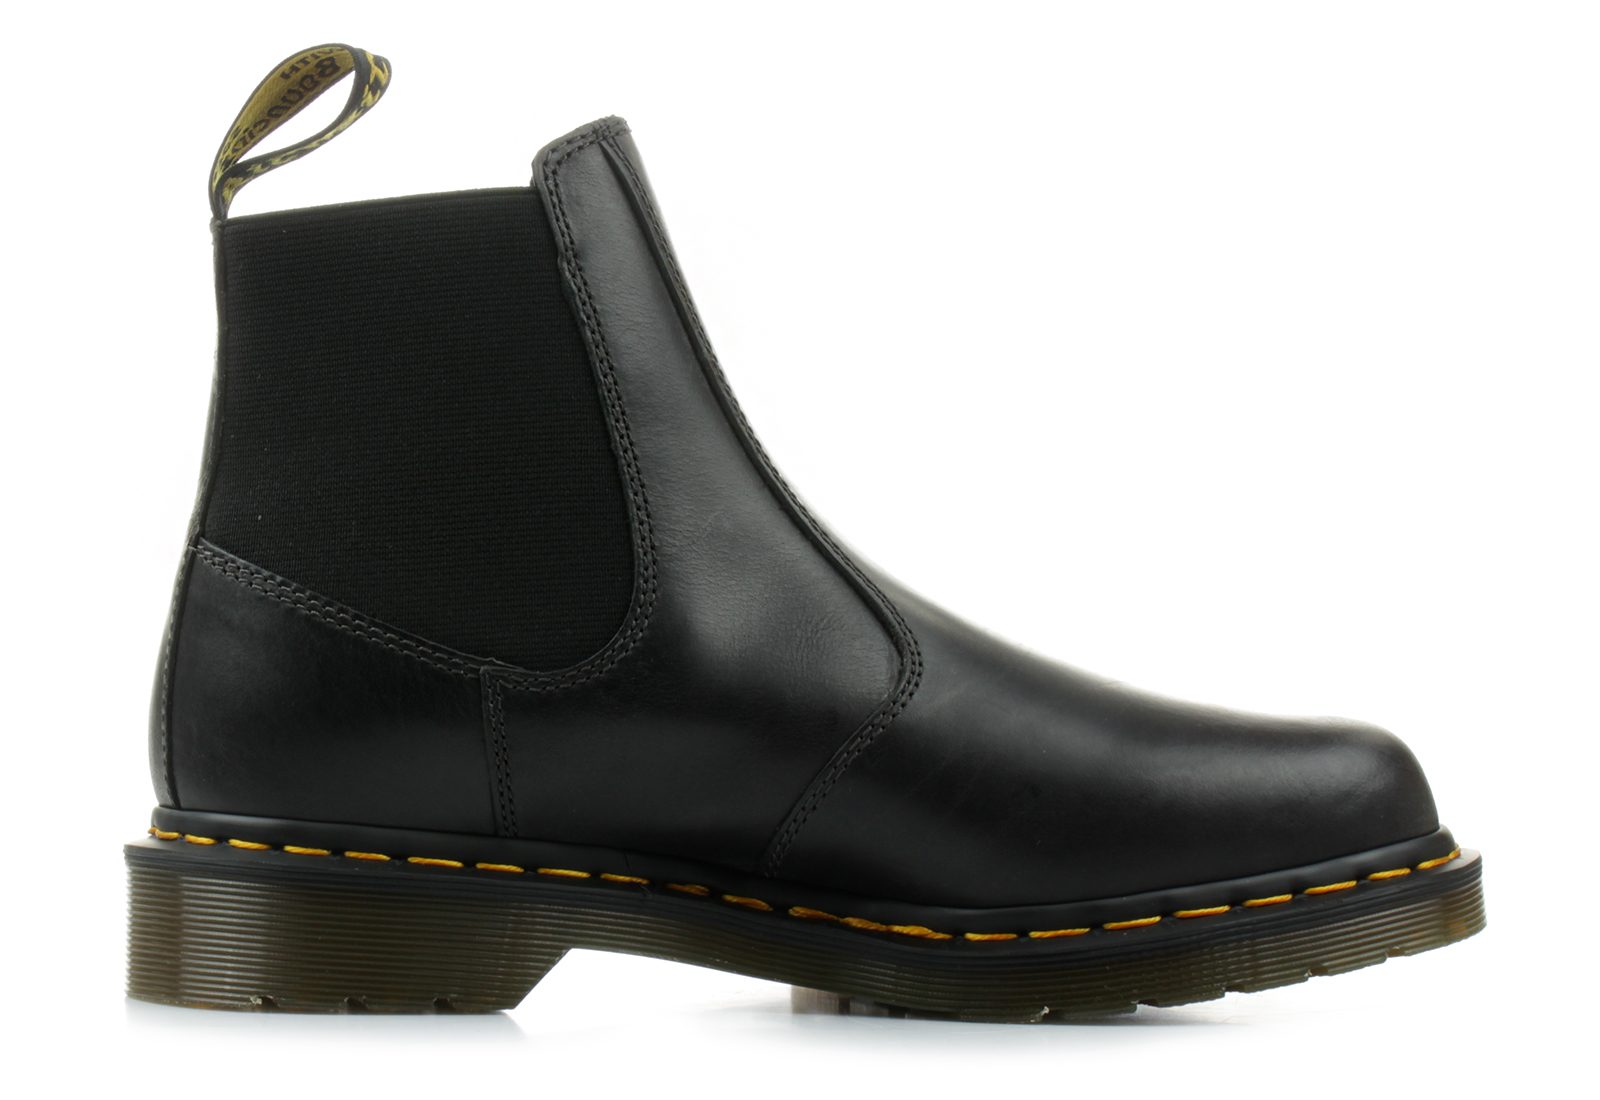 dr martens boots hardy chelsea boot dm22827029 online shop for sneakers shoes and boots. Black Bedroom Furniture Sets. Home Design Ideas